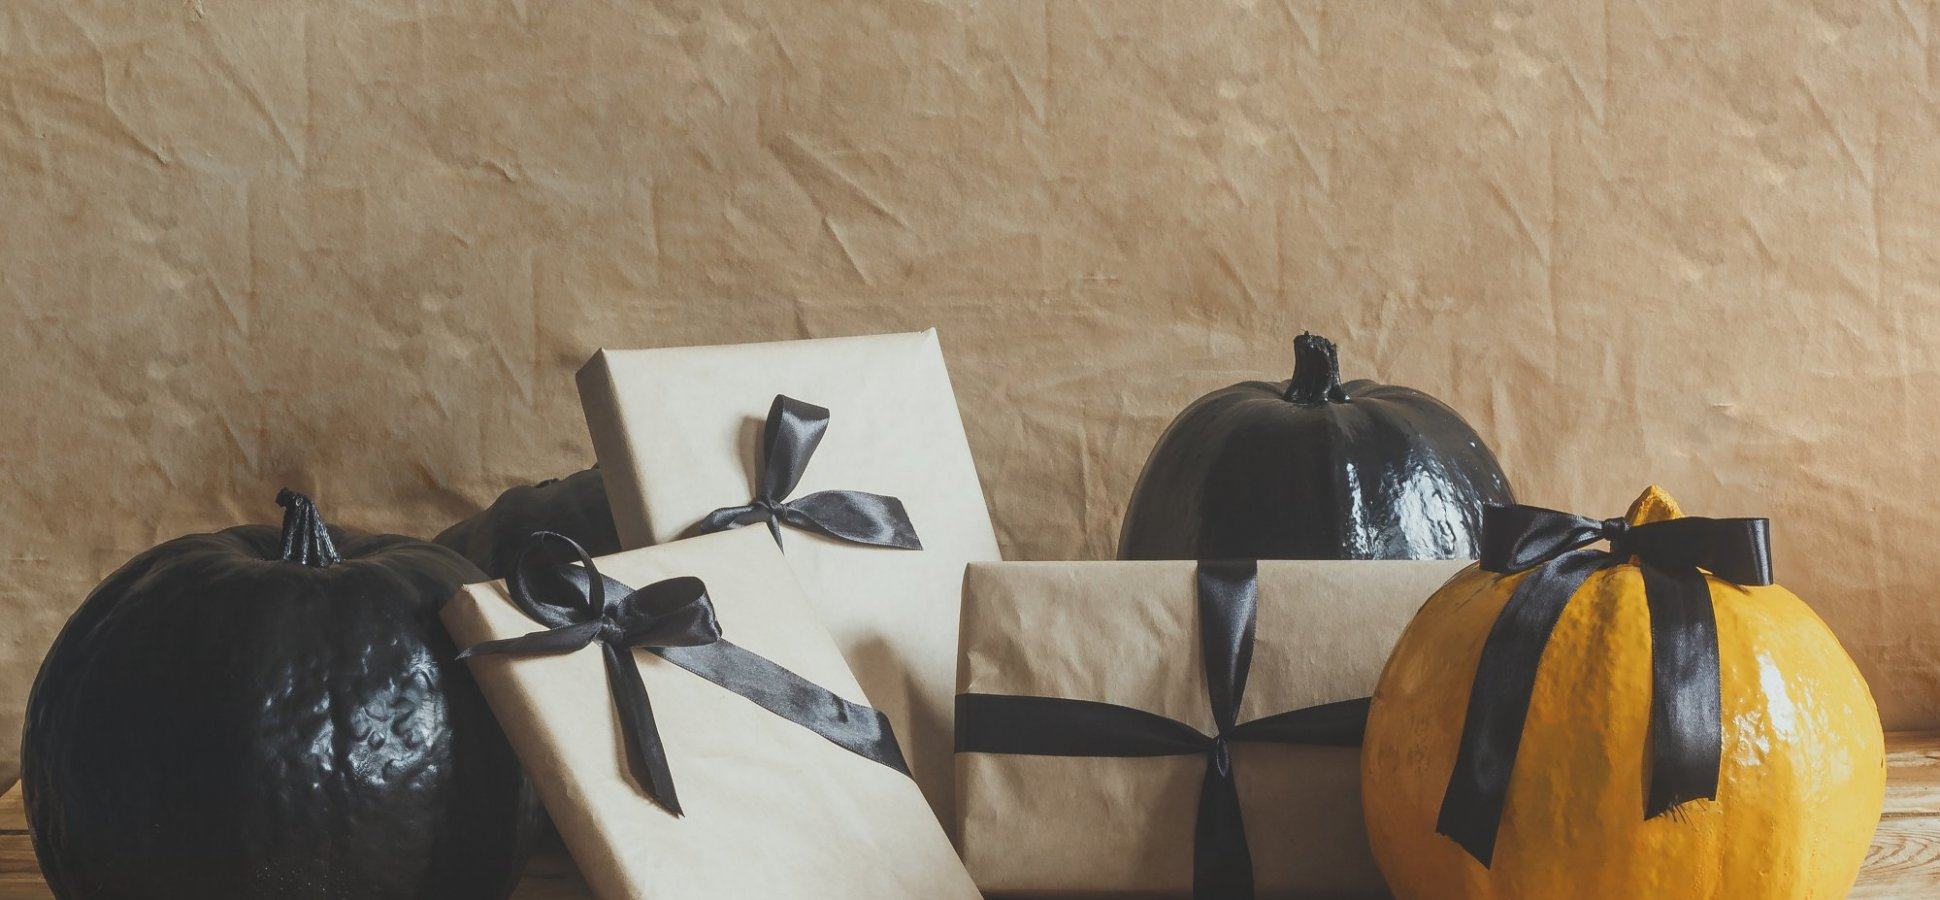 How to Boost Your E-Commerce Sales This Halloween: 3 Ideas